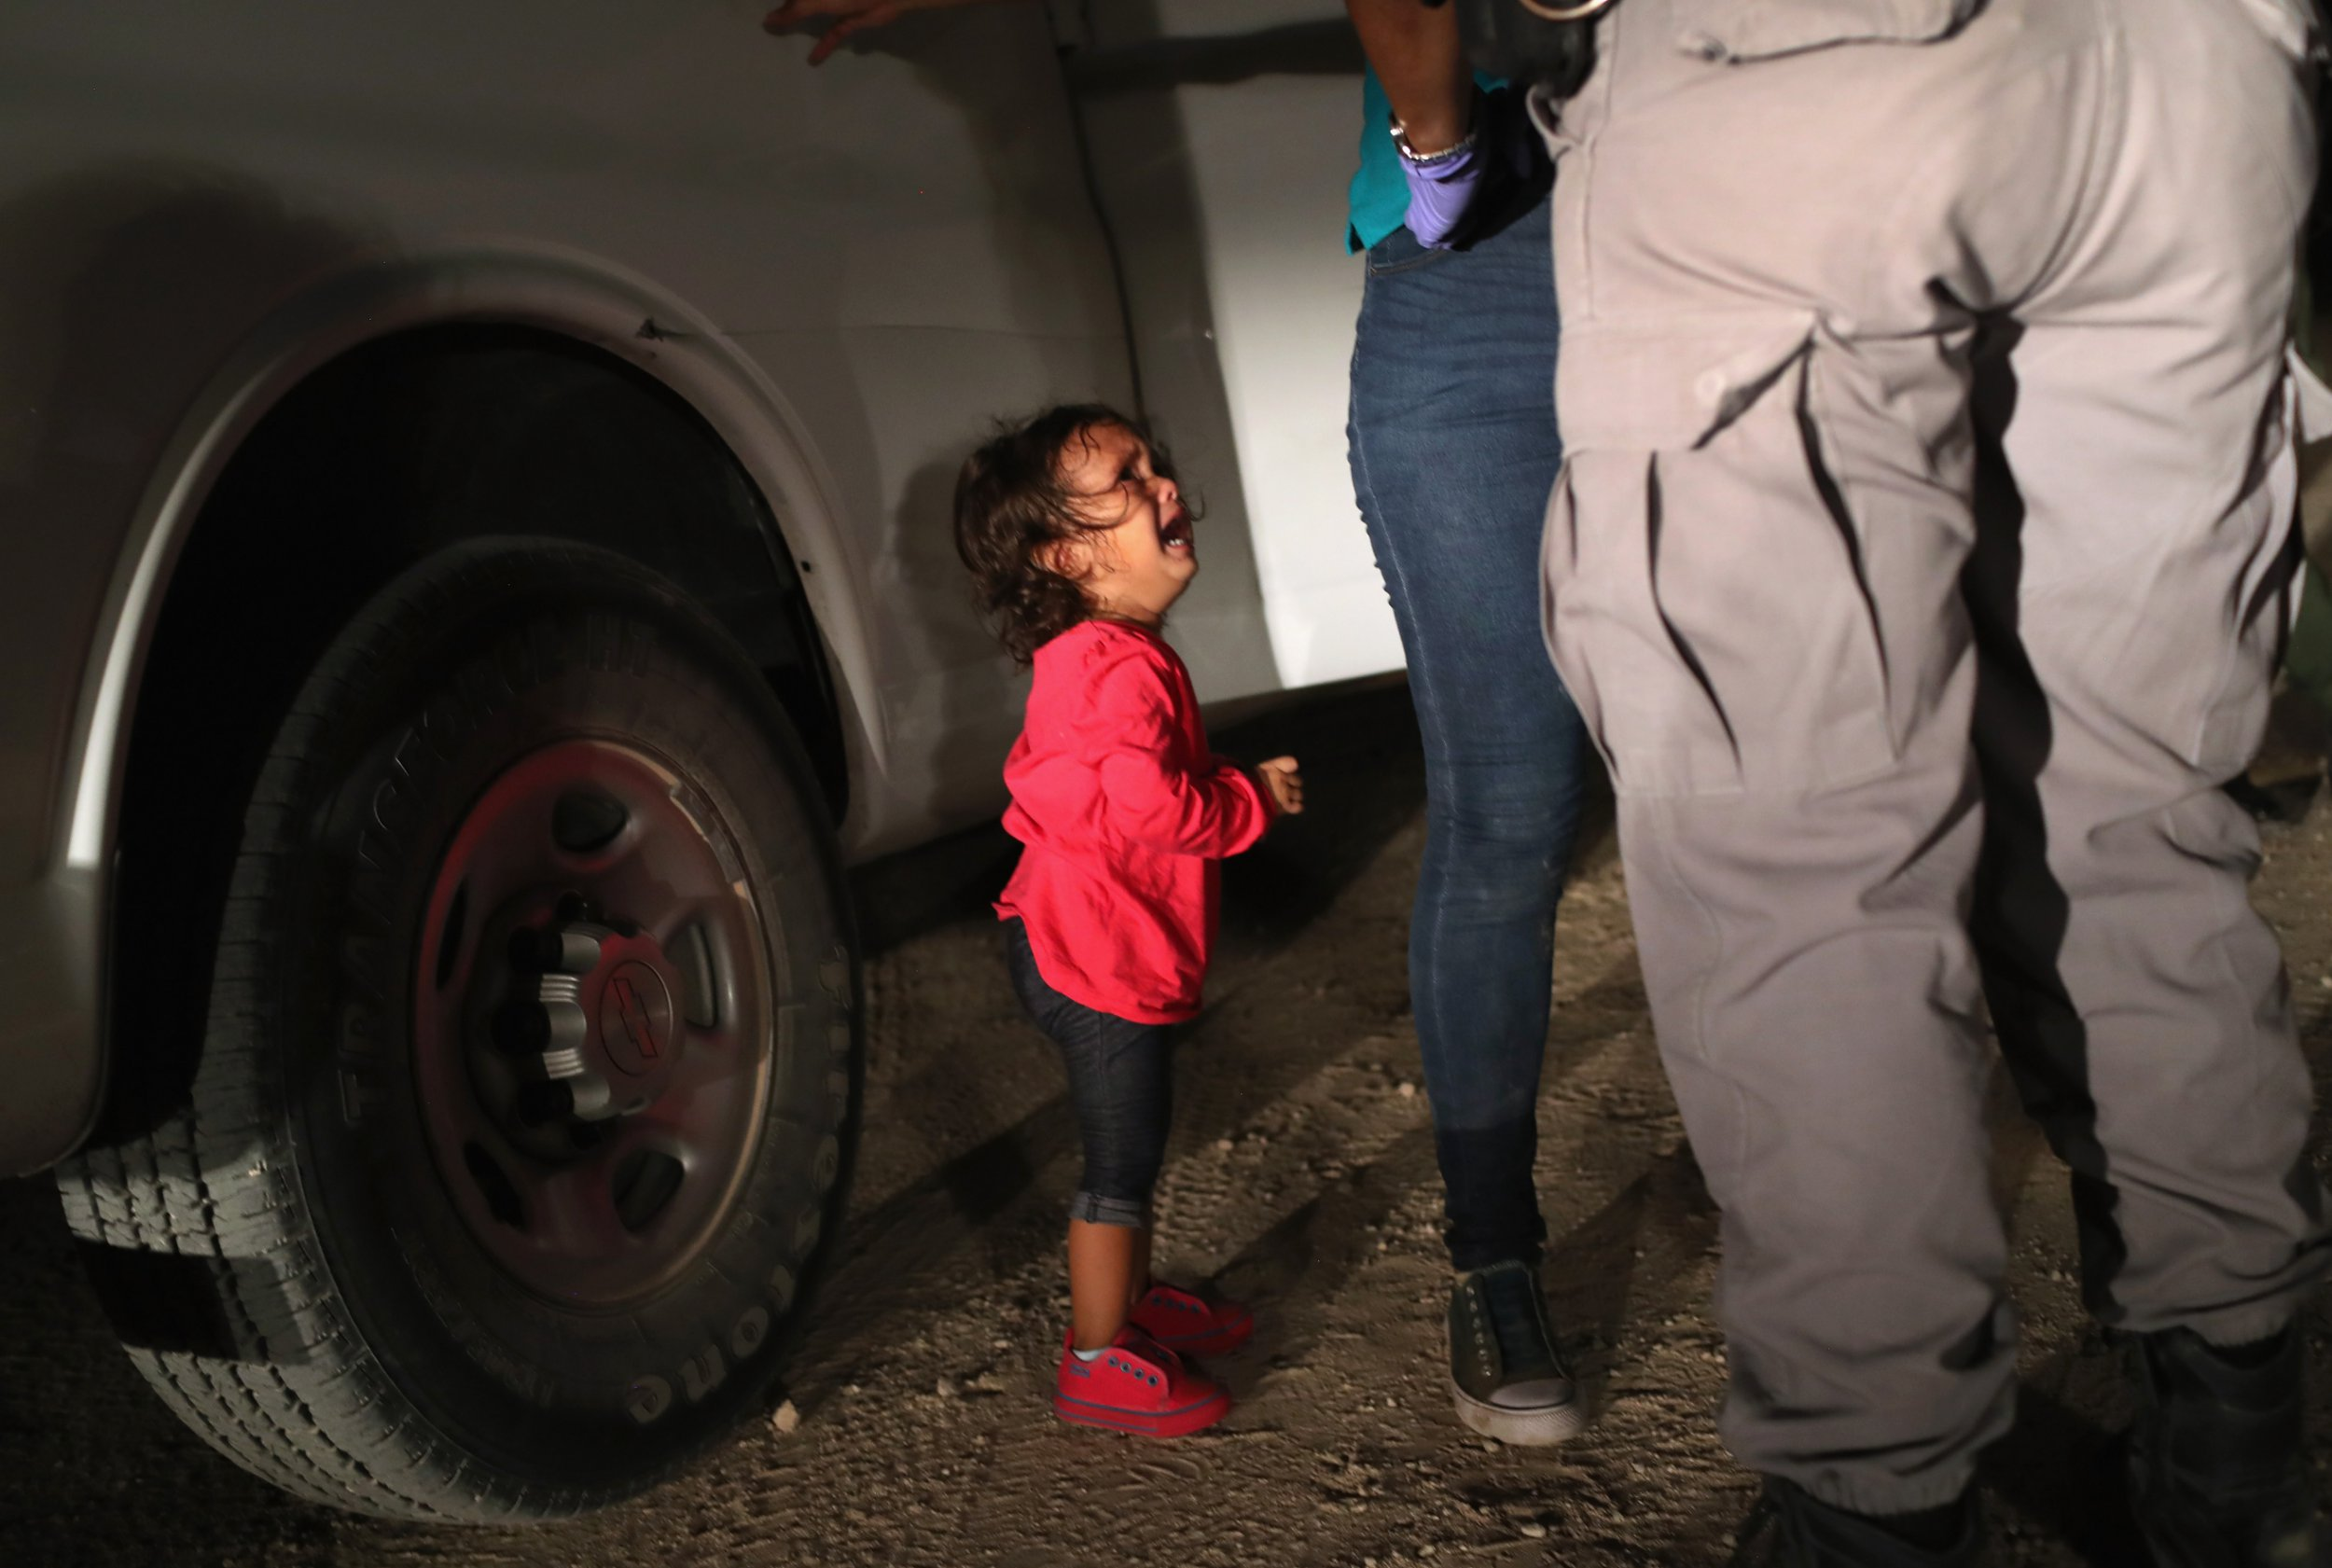 The story behind the heart breaking photograph of a crying child at the US border